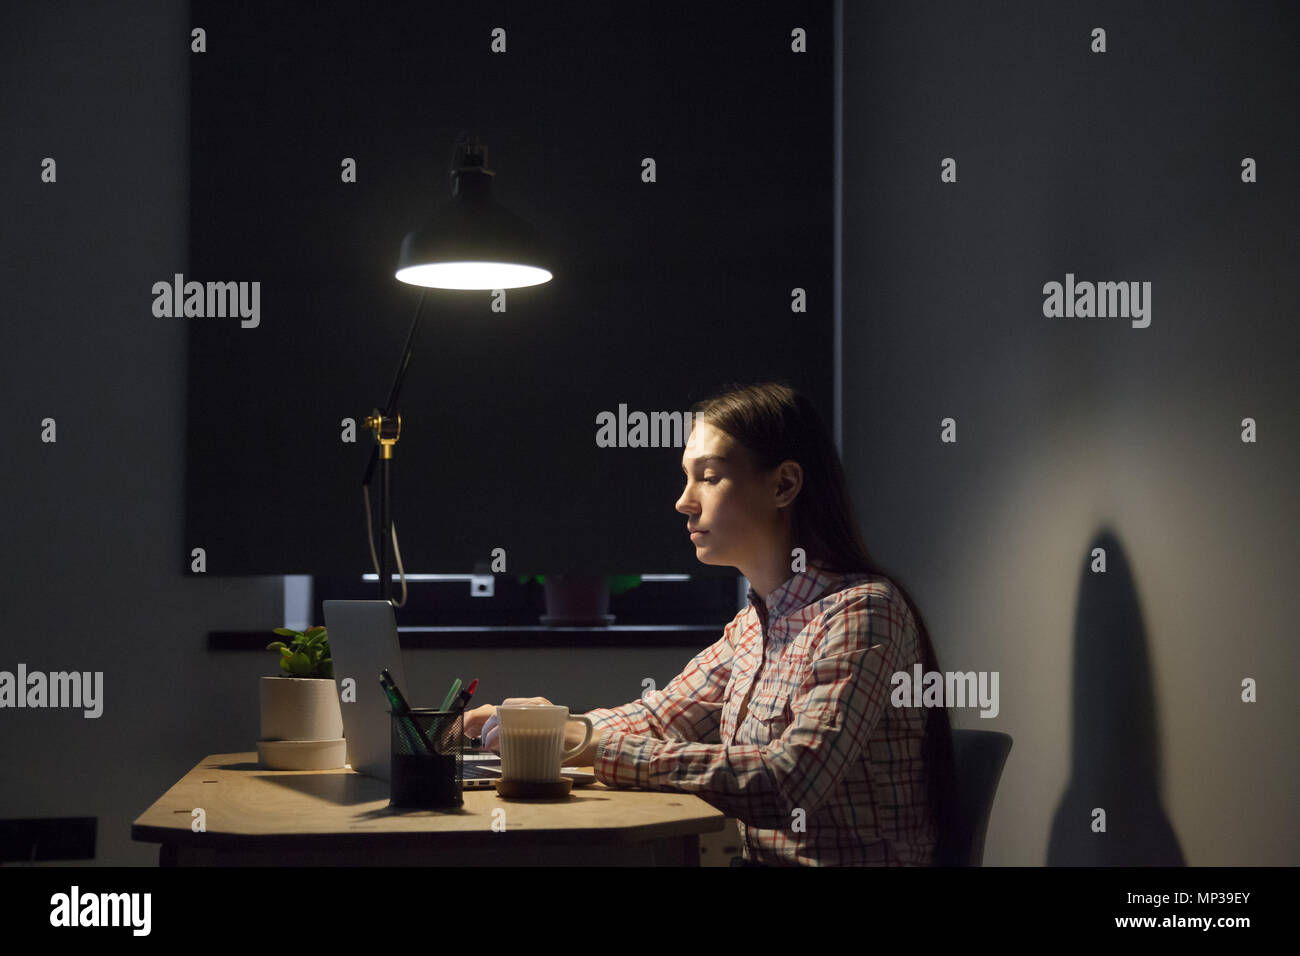 Tired female browsing information at laptop working late hours - Stock Image